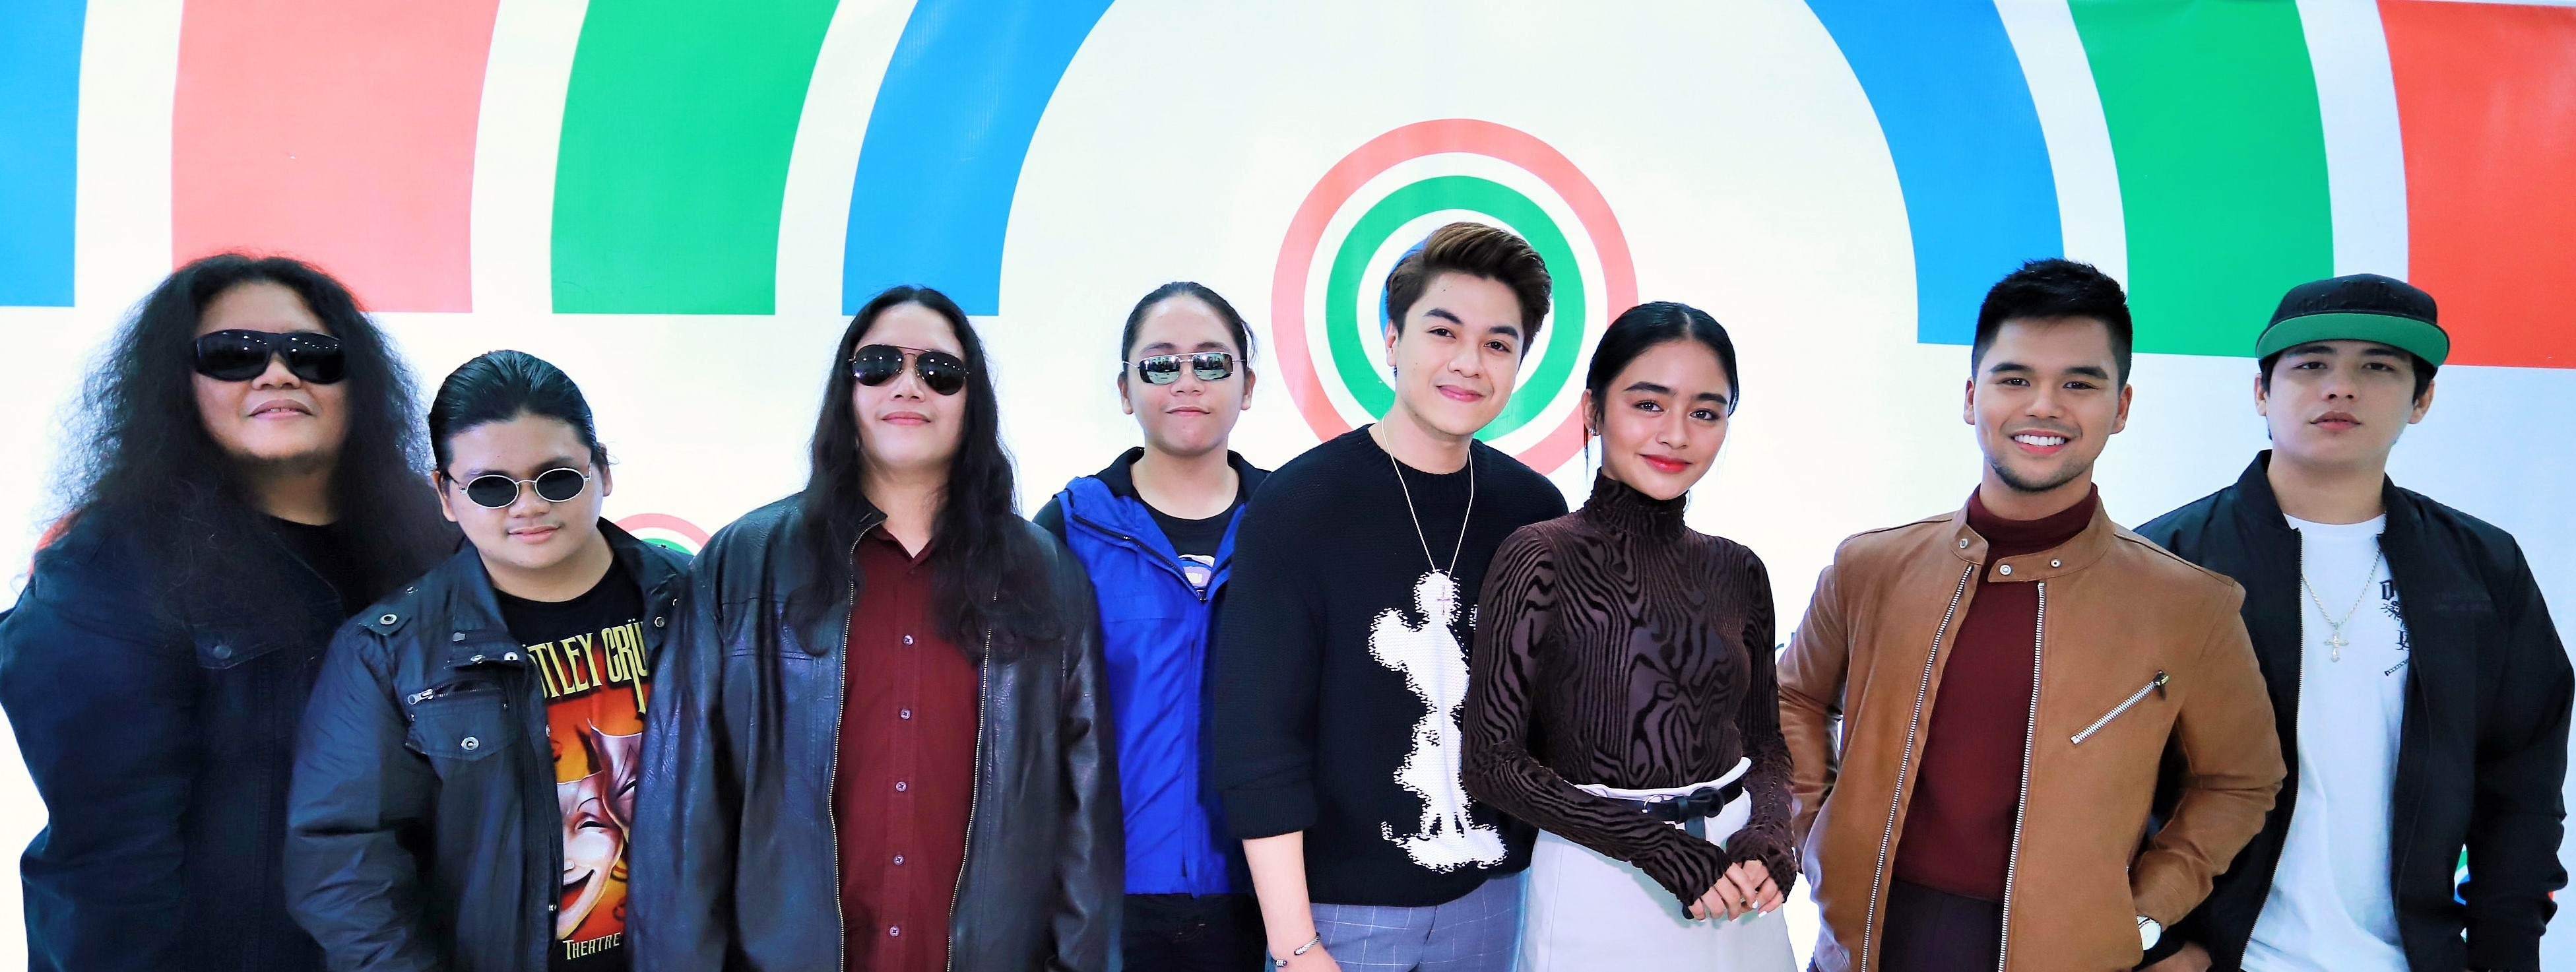 Watch out for the upcoming projects of these newly signed Star Music artists From left Solabros com, CK Kieron,Vivoree Esclito, JMKO and Kritiko